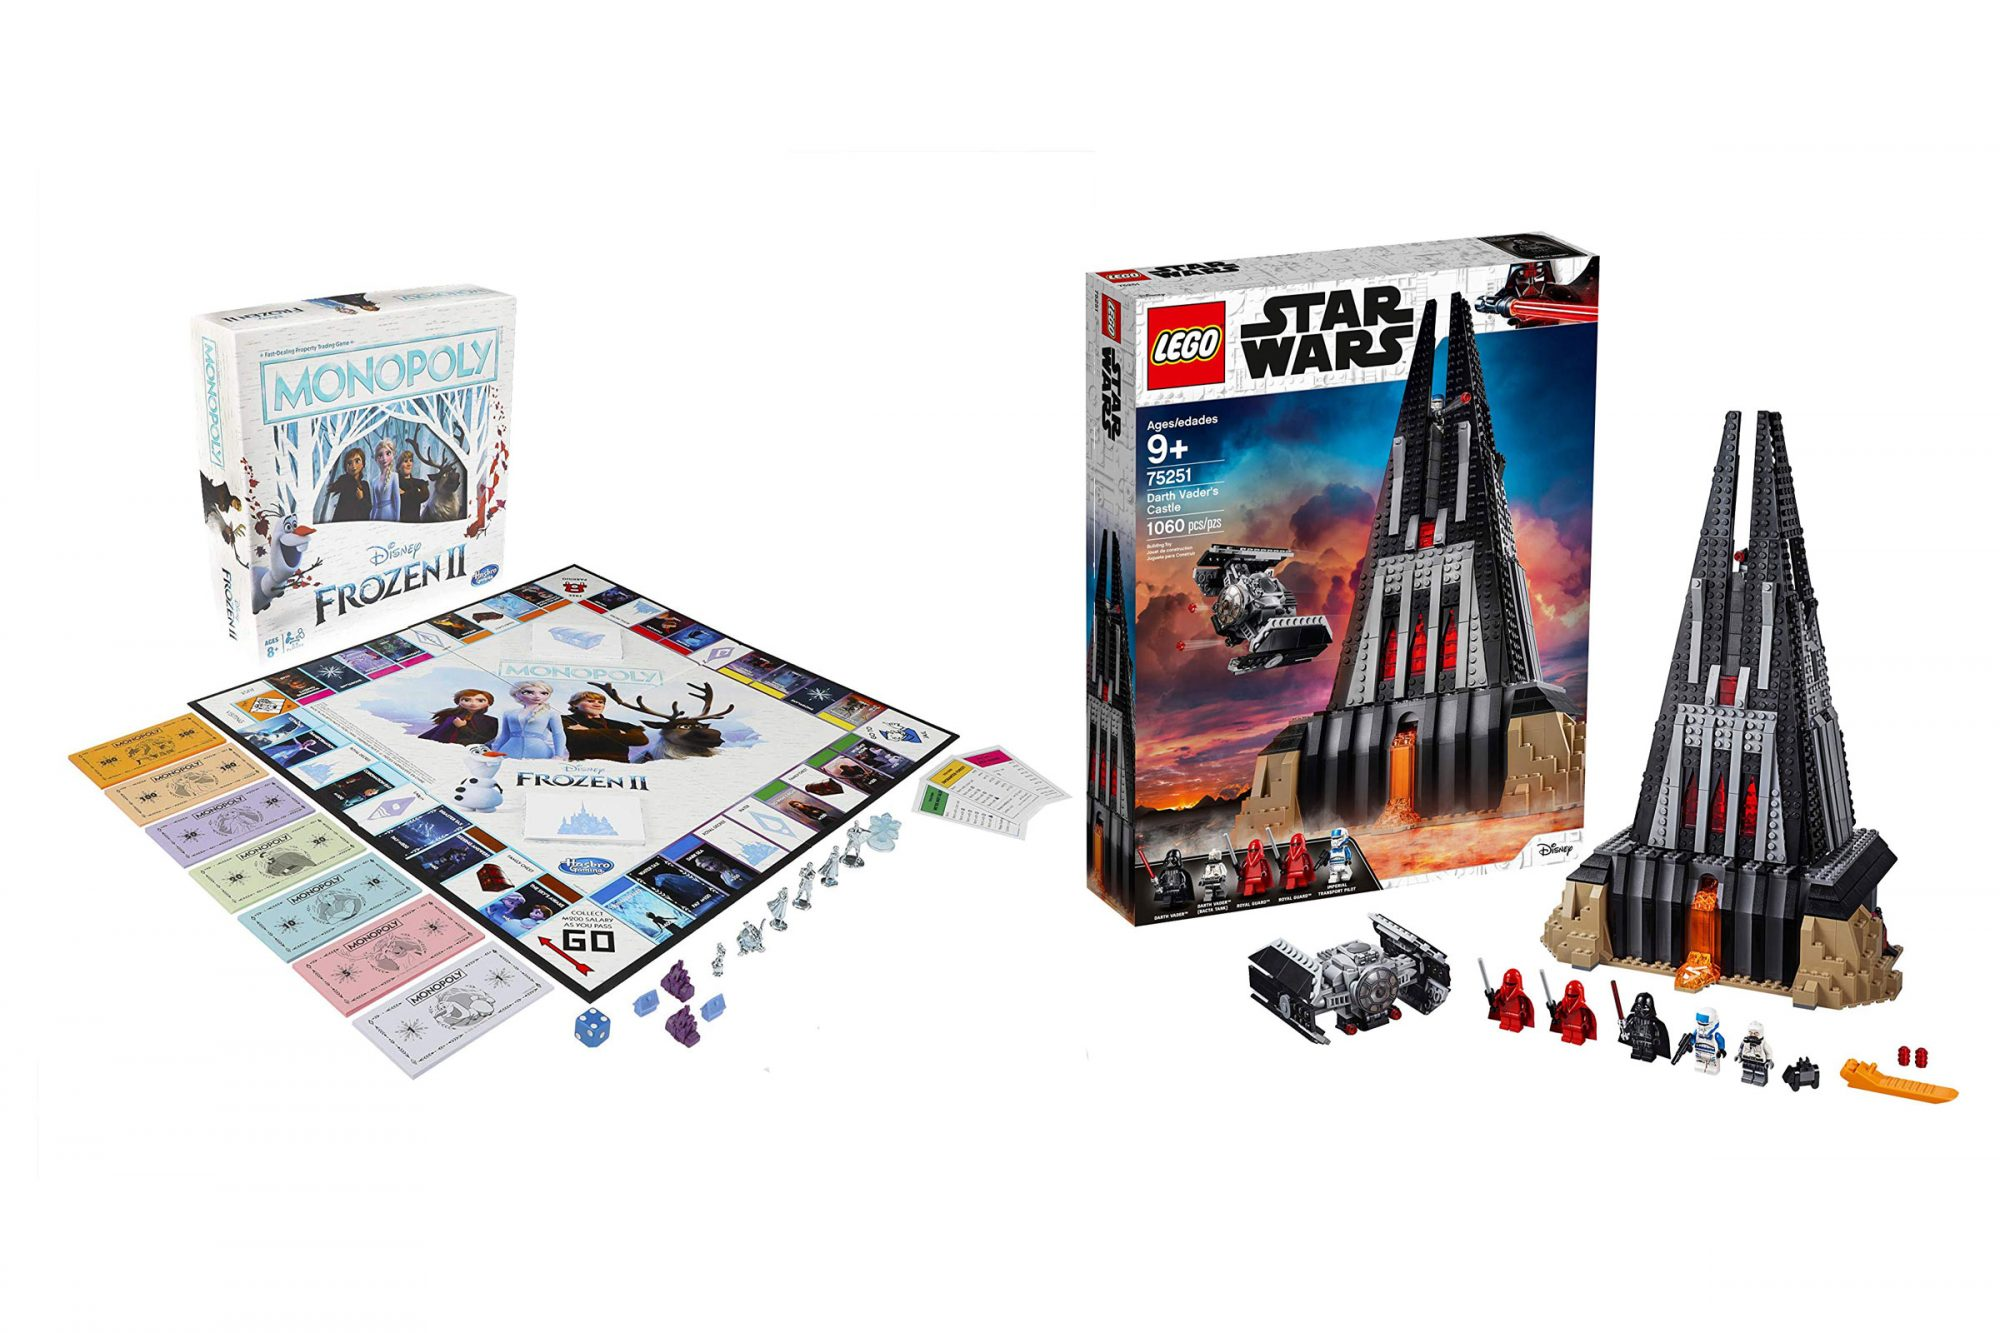 Monopoly Game: Disney Frozen 2 Edition Board Game for Ages 8 & Up LEGO Star Wars Darth Vader's Castle 75251 Building Kit includes TIE Fighter, Darth Vader Minifigures, Bacta Tank and more